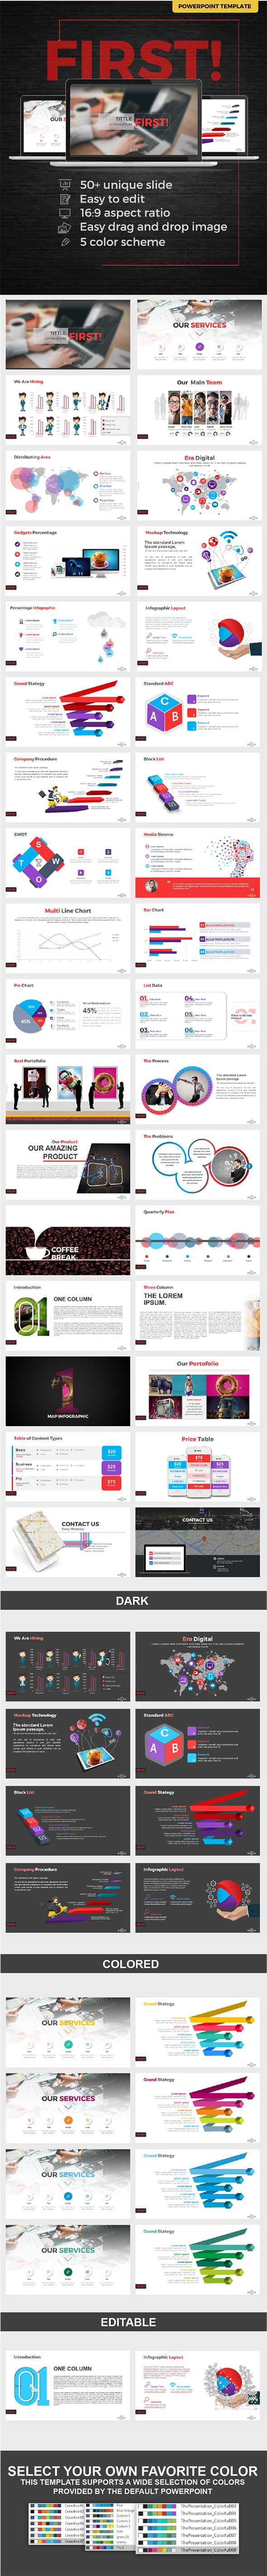 526 best PowerPoint/Keynote images on Pinterest | Page layout ...